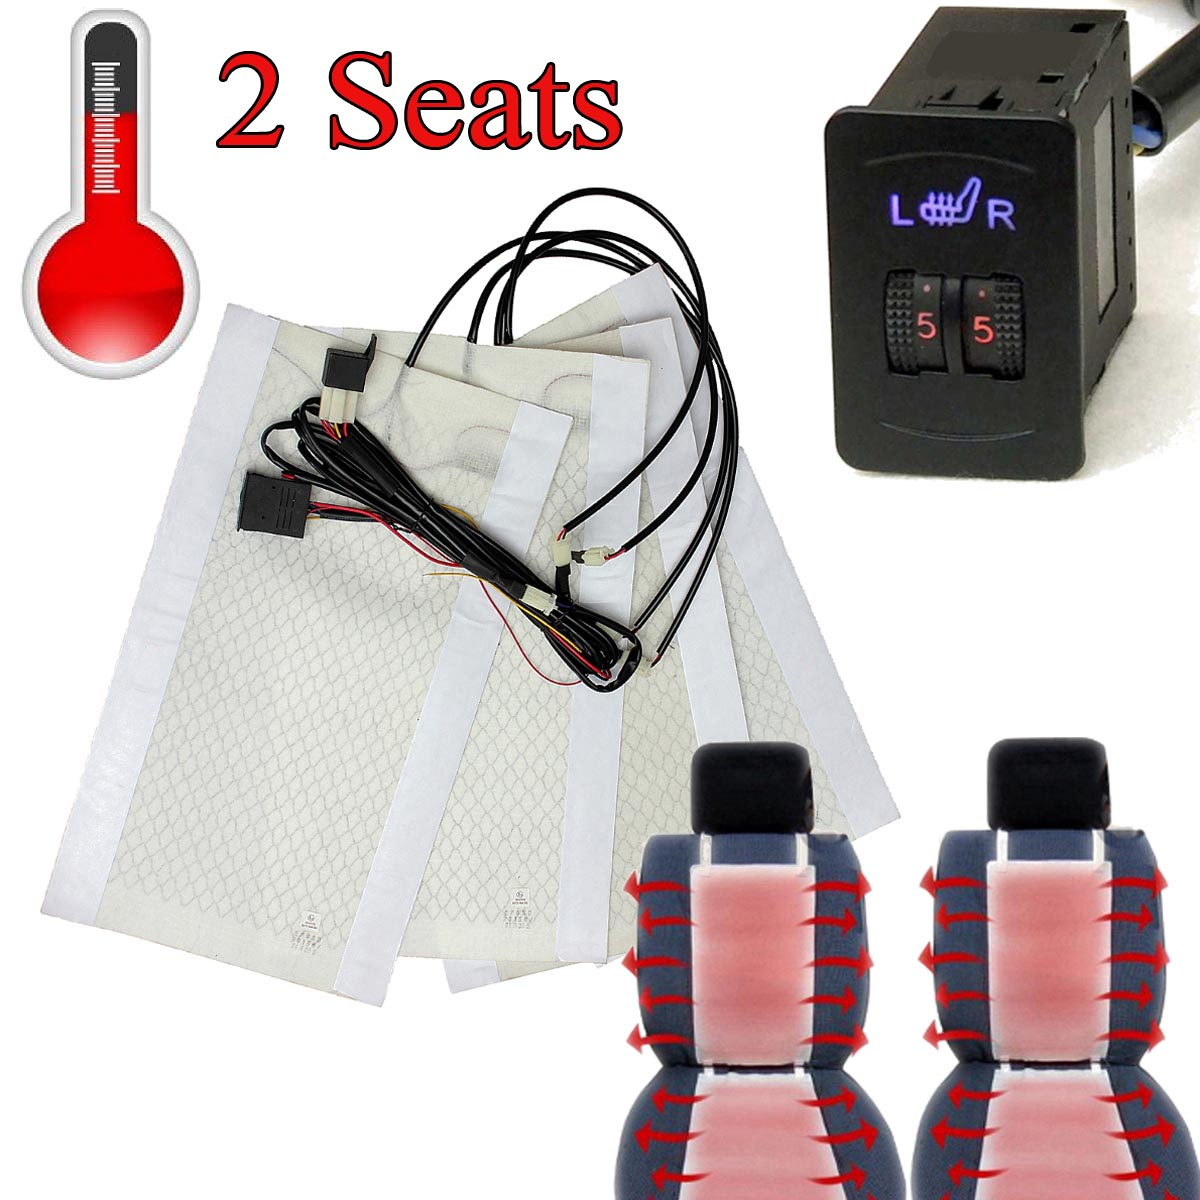 Brand New 2 Seats Universal Carbon Fiber Heated Seat Heater 12V Pads 2 Dial 5 Level Switch<br><br>Aliexpress